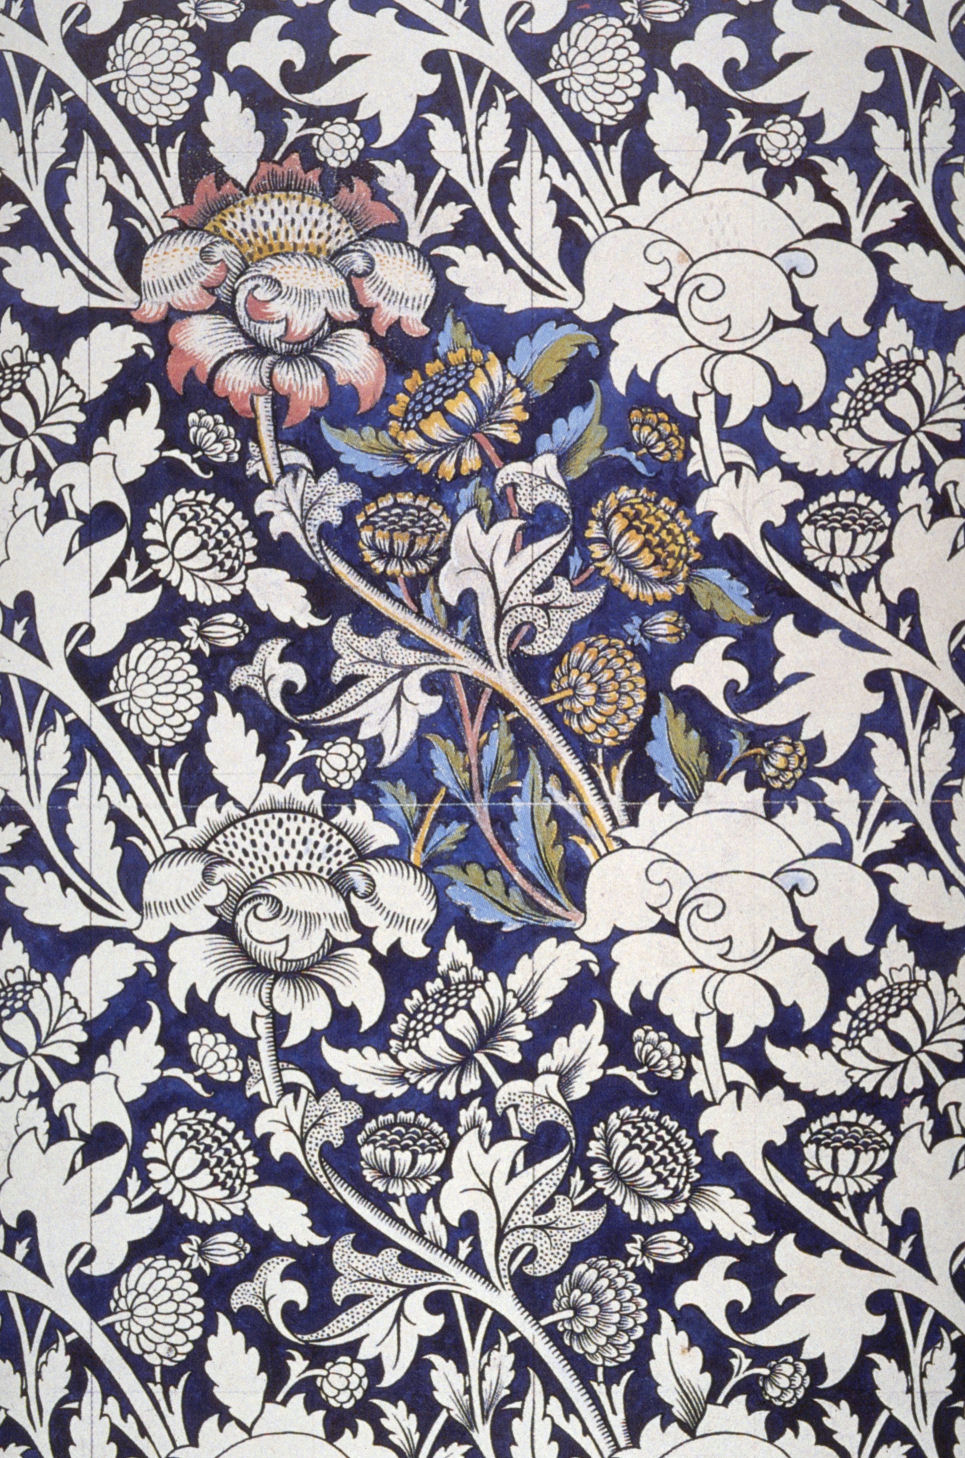 Description Morris Wey printed textile design c 1883.jpg